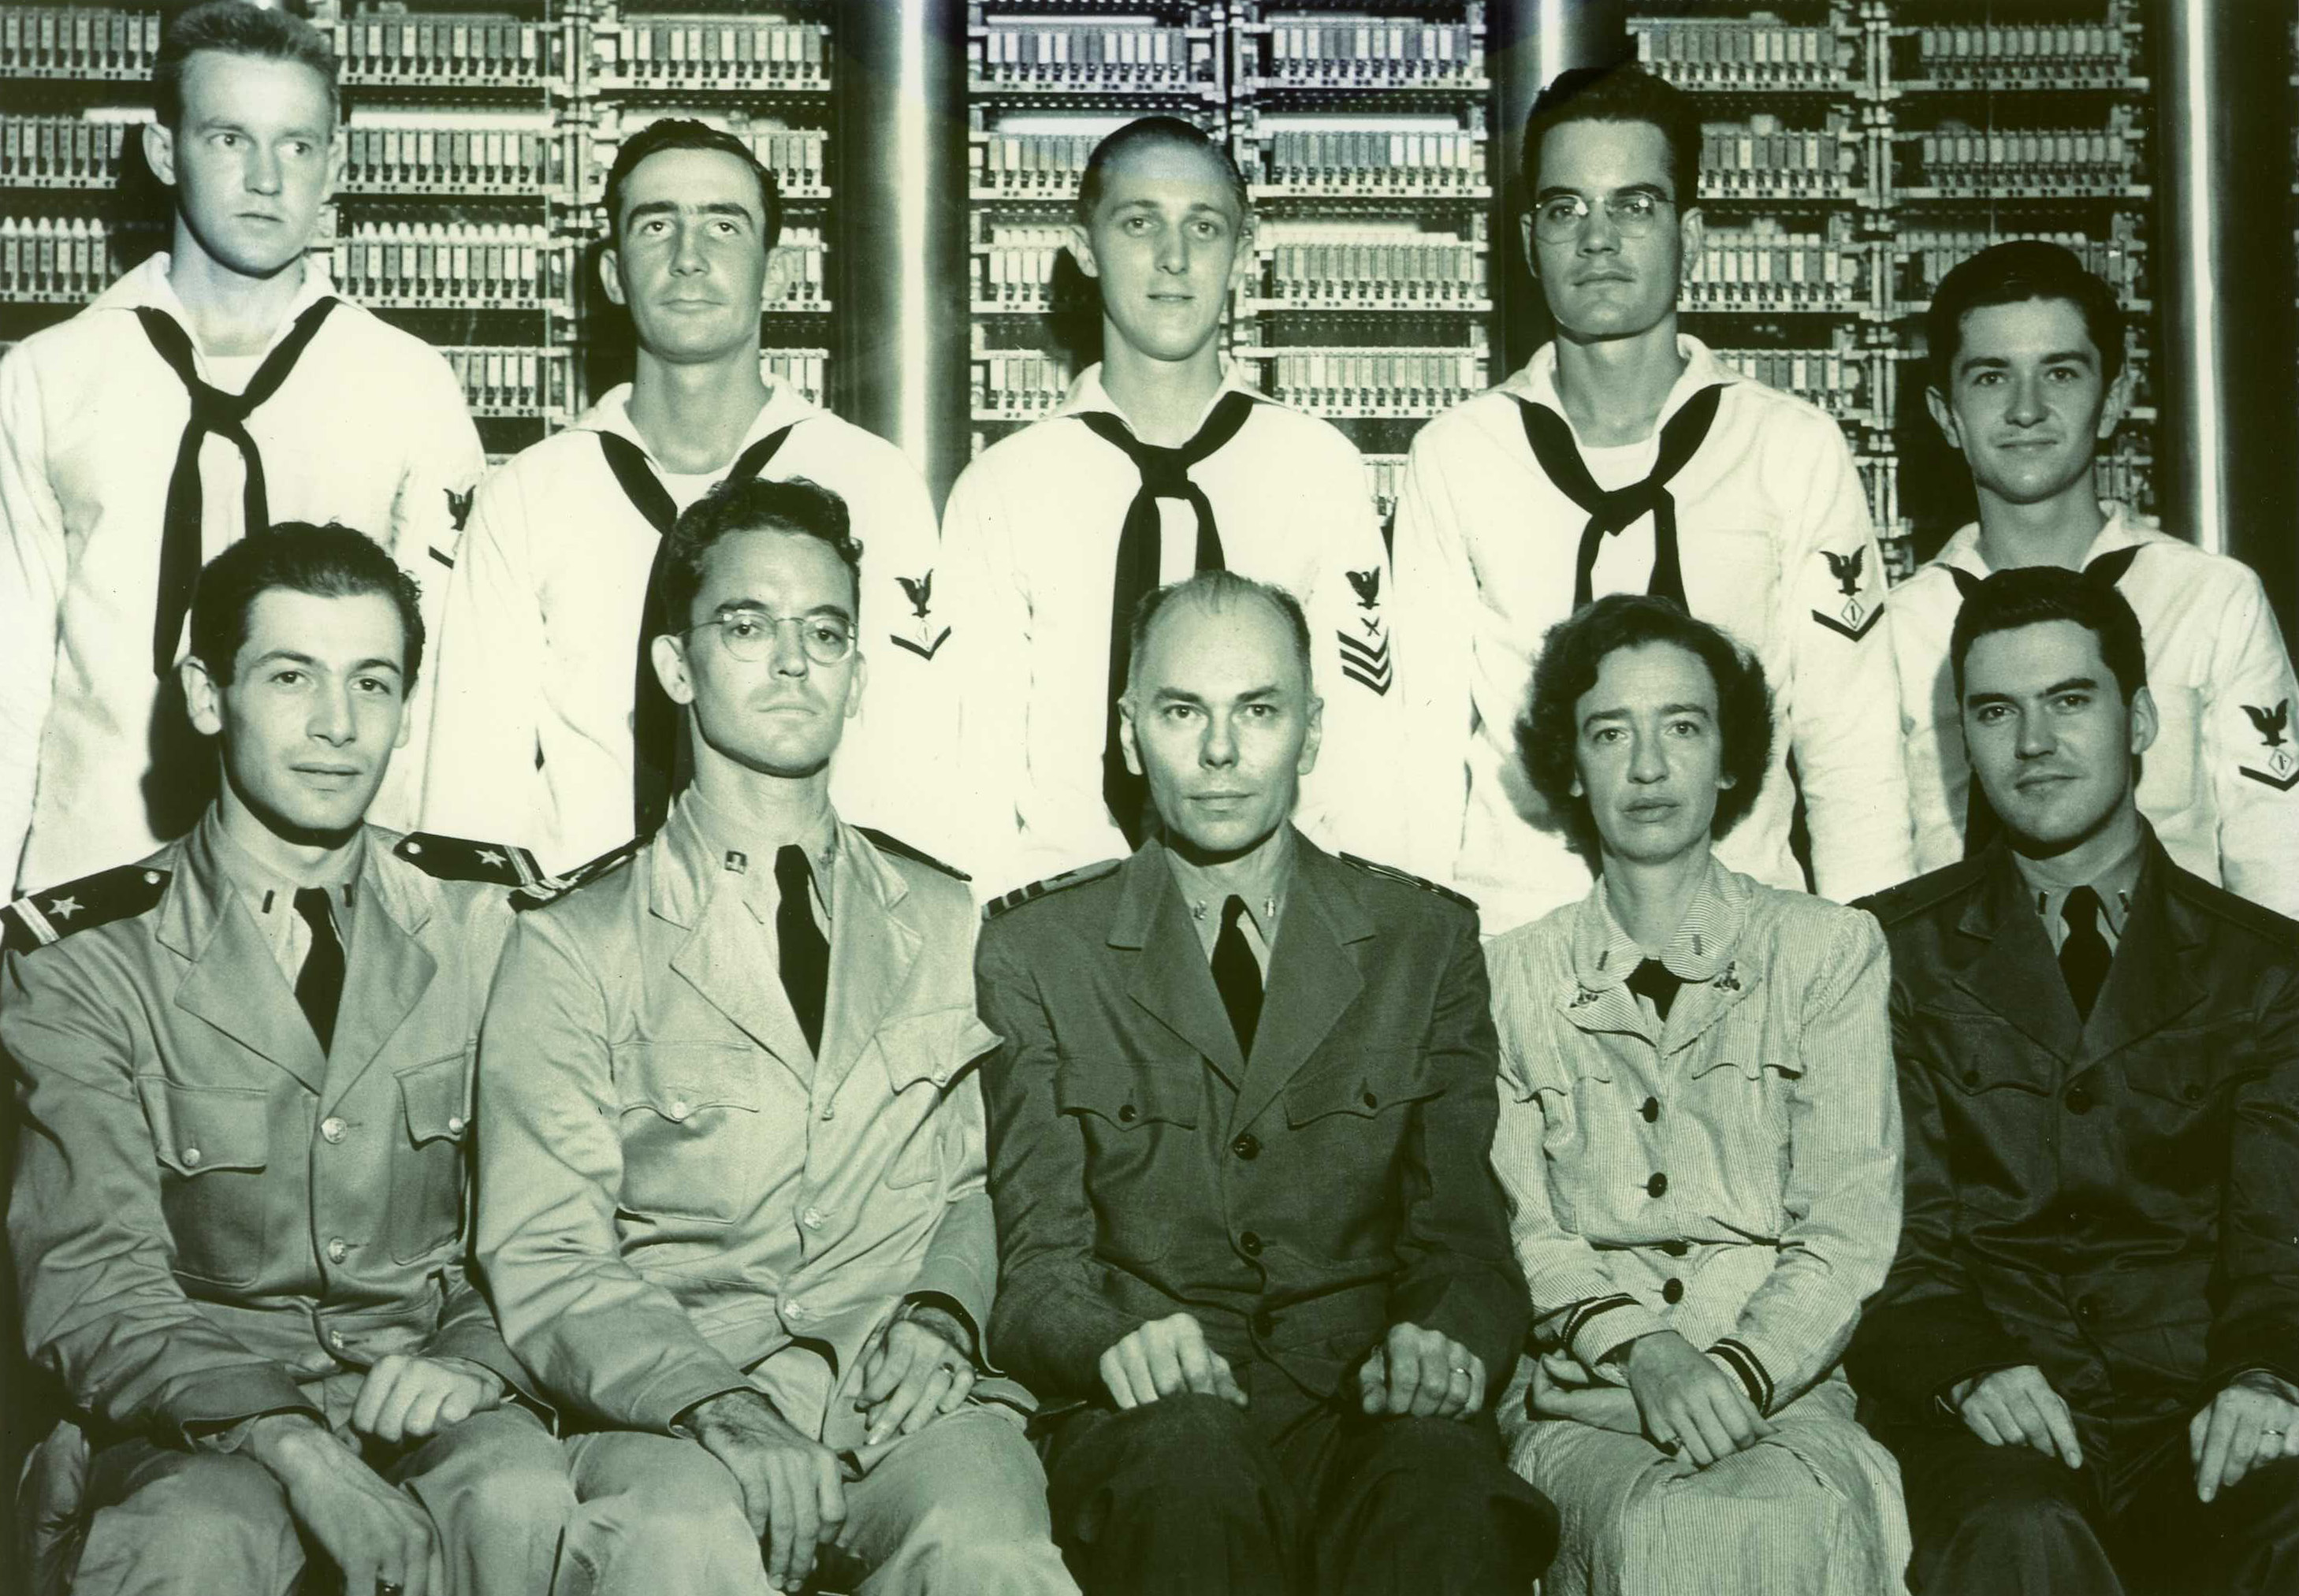 Grace Hopper and Cruft Research Lab colleagues in front of the Mark I during World War II.